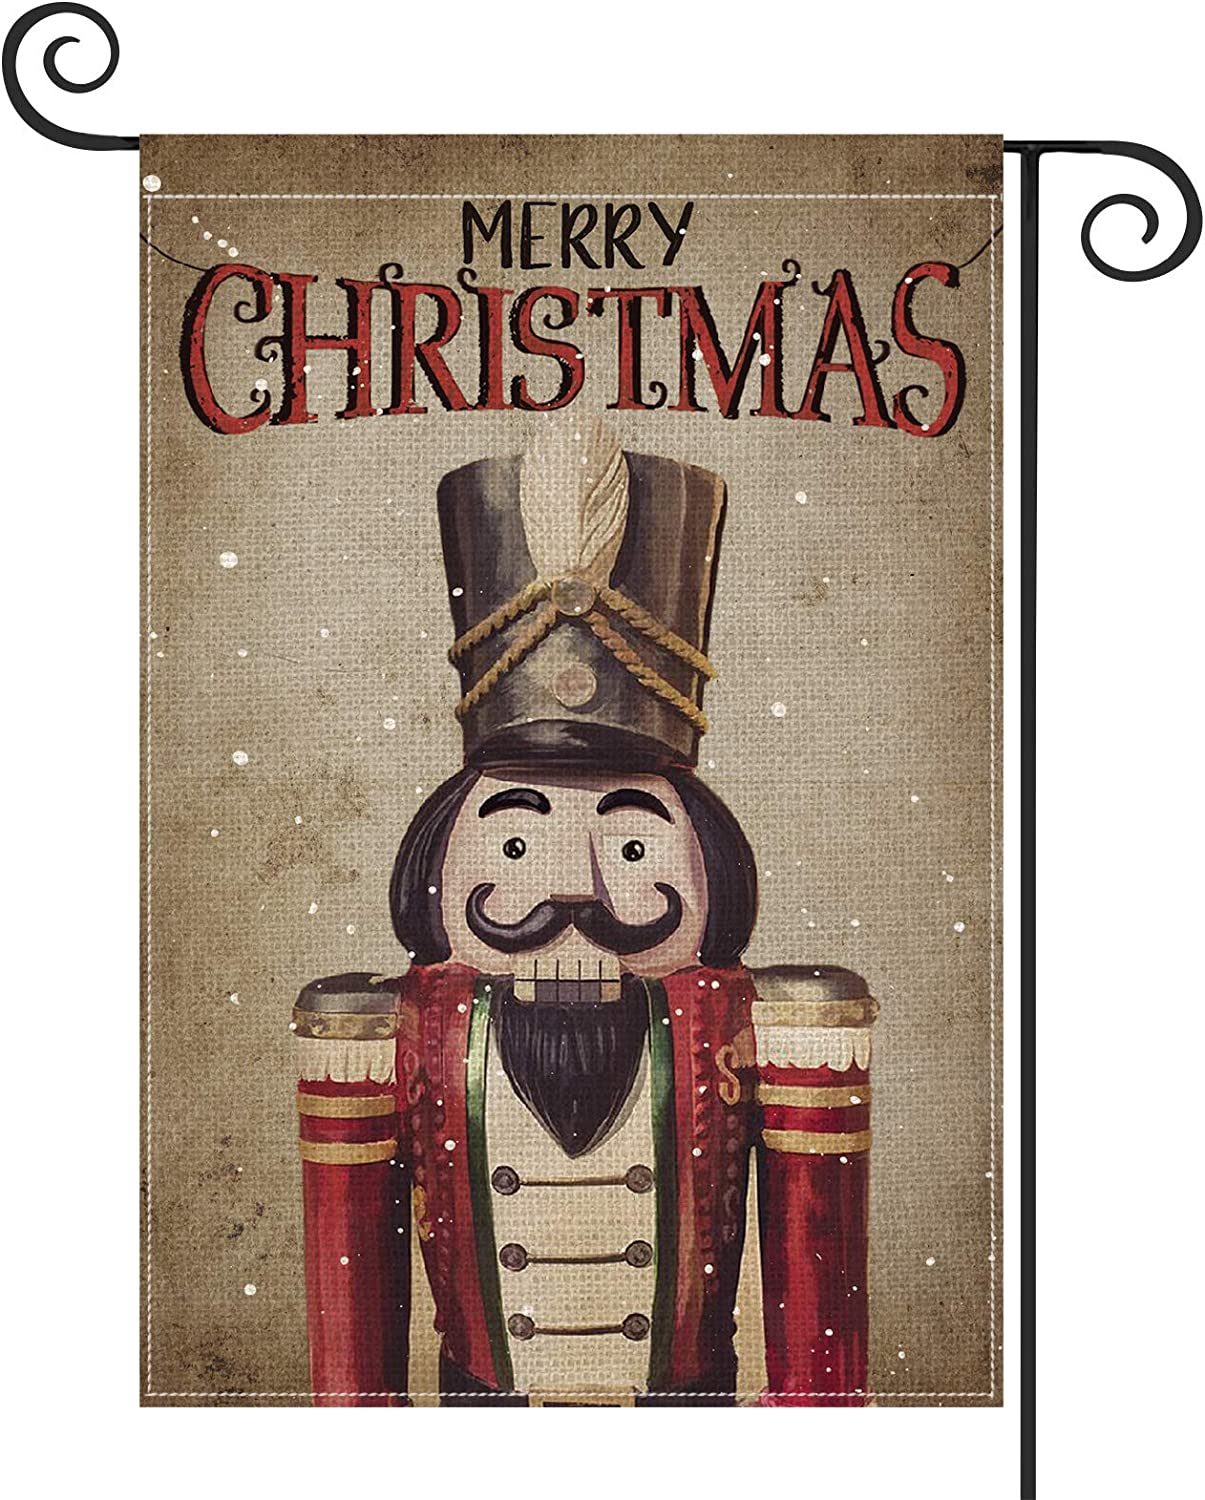 AVOIN Merry Christmas Watercolor Nutcracker Garden Flag Vertical Double Sized, Winter Holiday Party Yard Outdoor Decoration 12.5 x 18 Inch